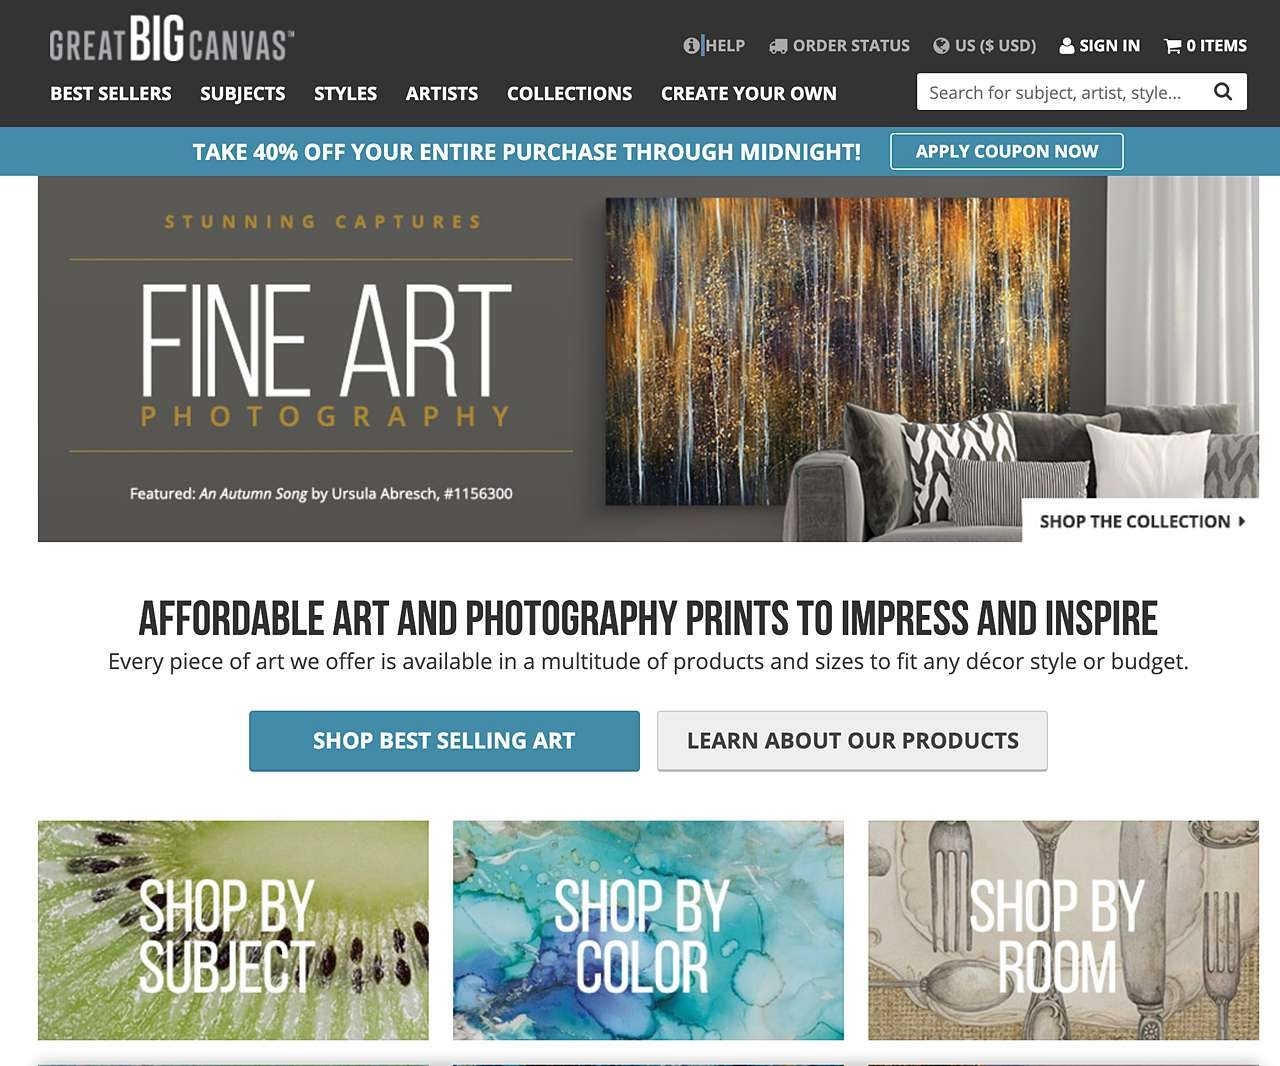 Find art online at Great Big Canvas